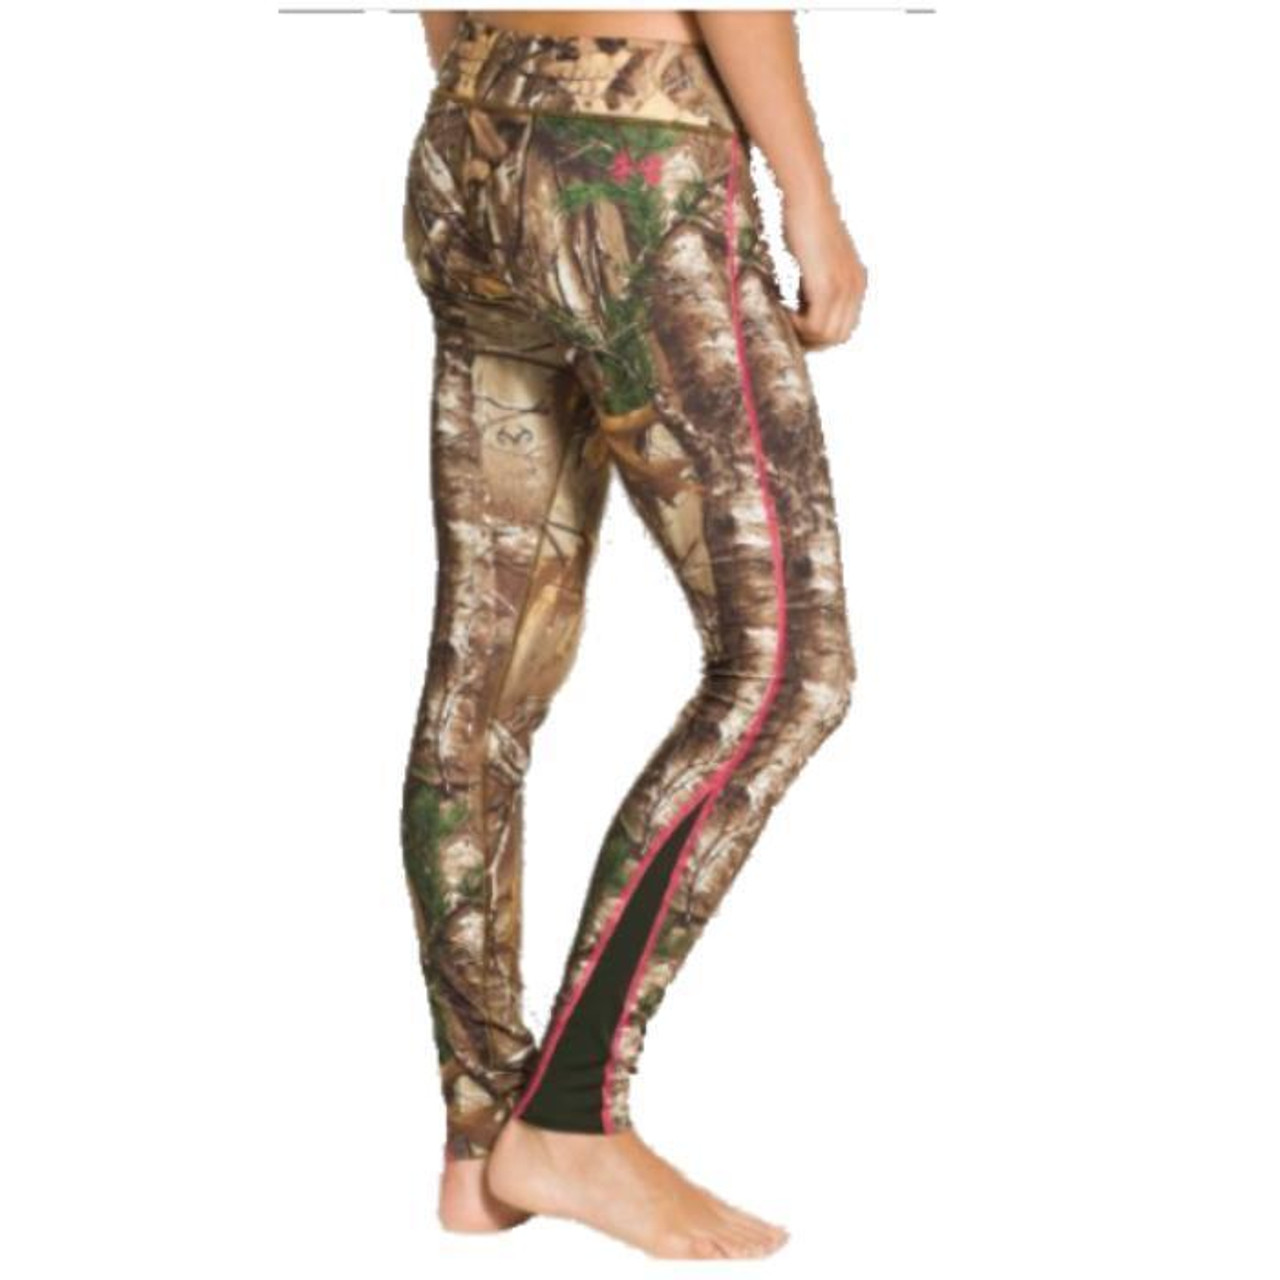 ecfbbbeeb5d87f Under Armour Women's Camo ColdGear Infrared Scent Control ...